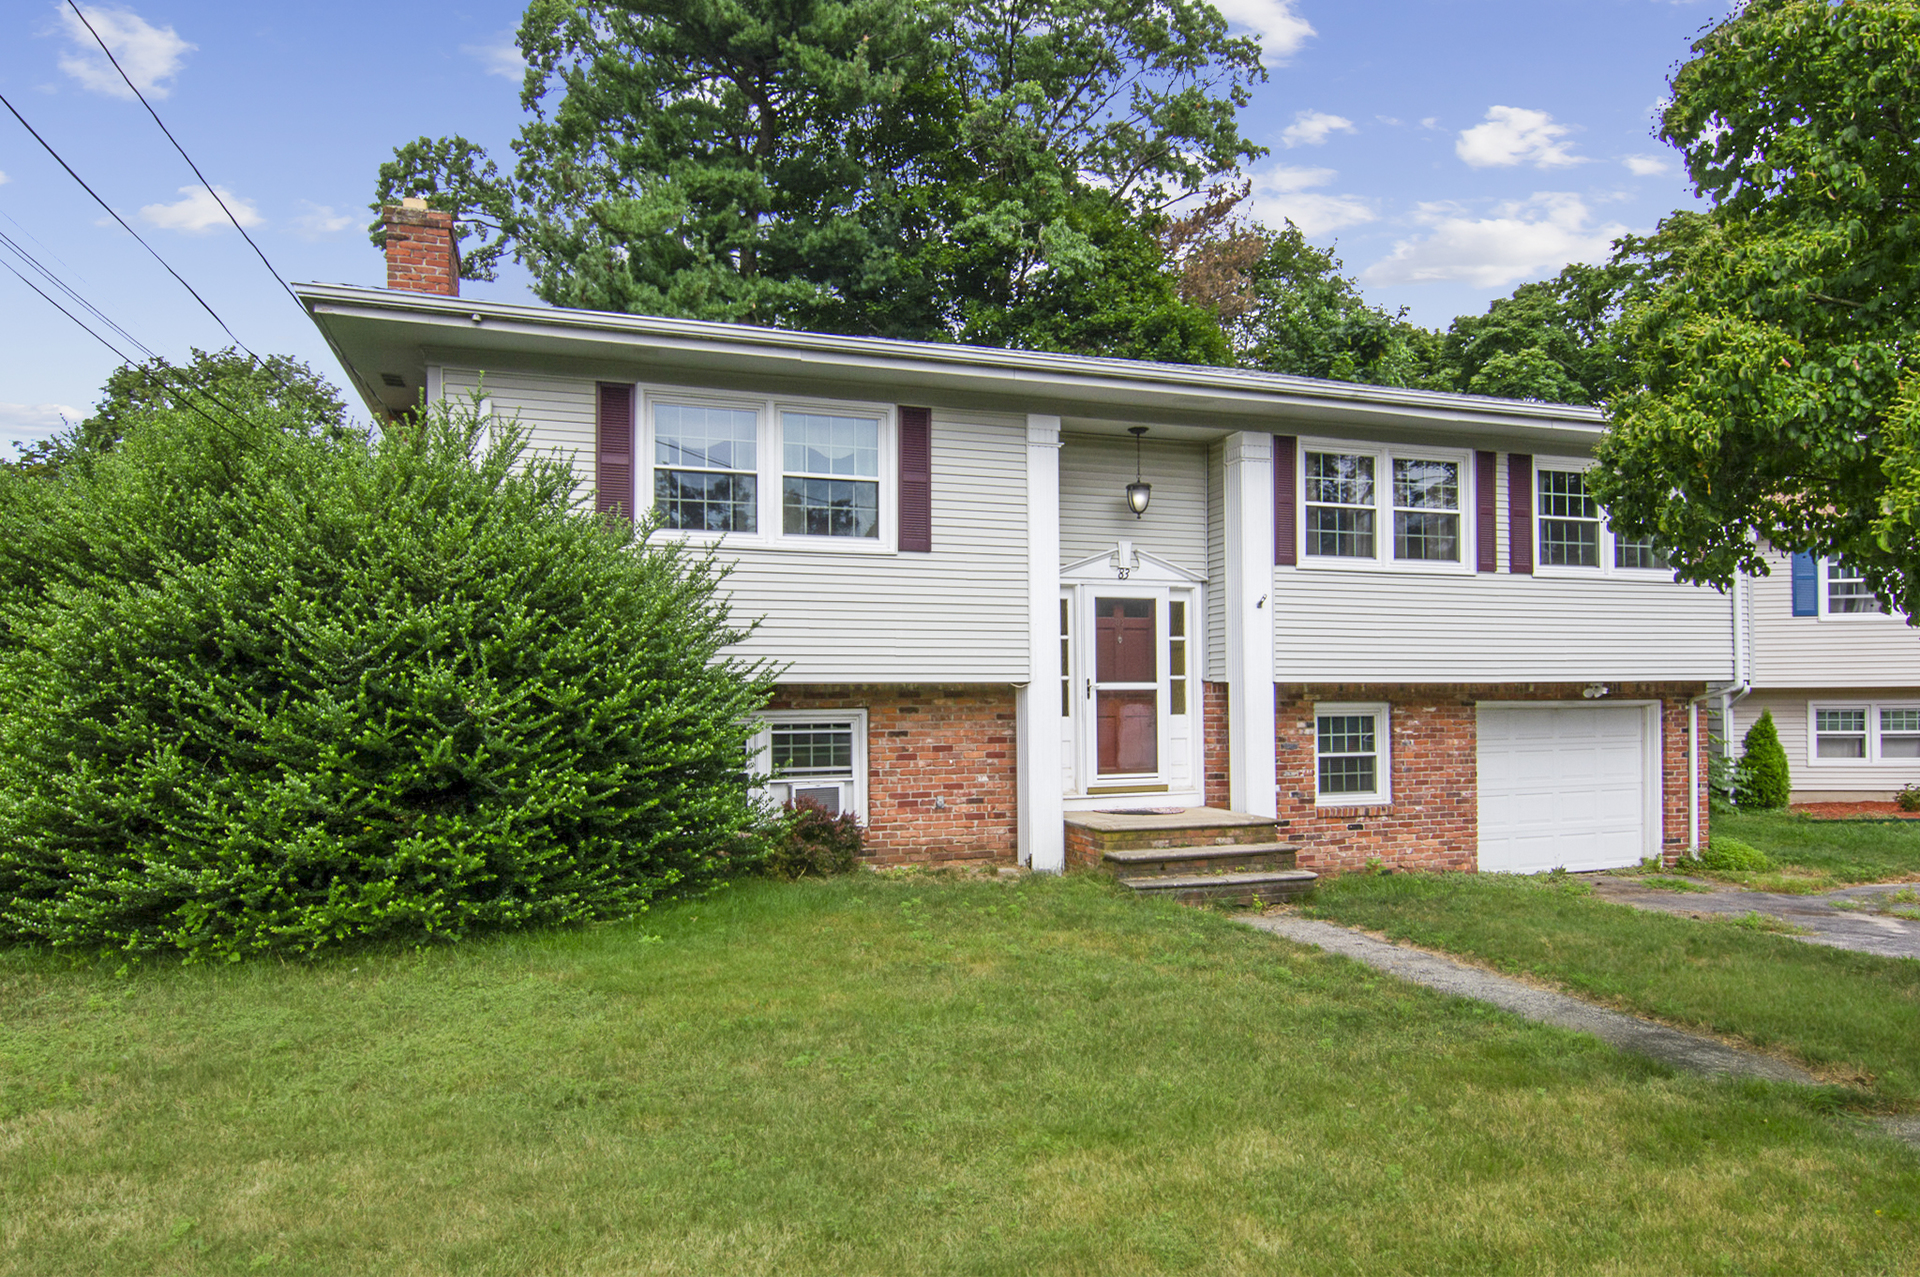 83 N Pearson Dr. Warwick, RI | Sunday 8/25 from 11:00 - 1:00pm